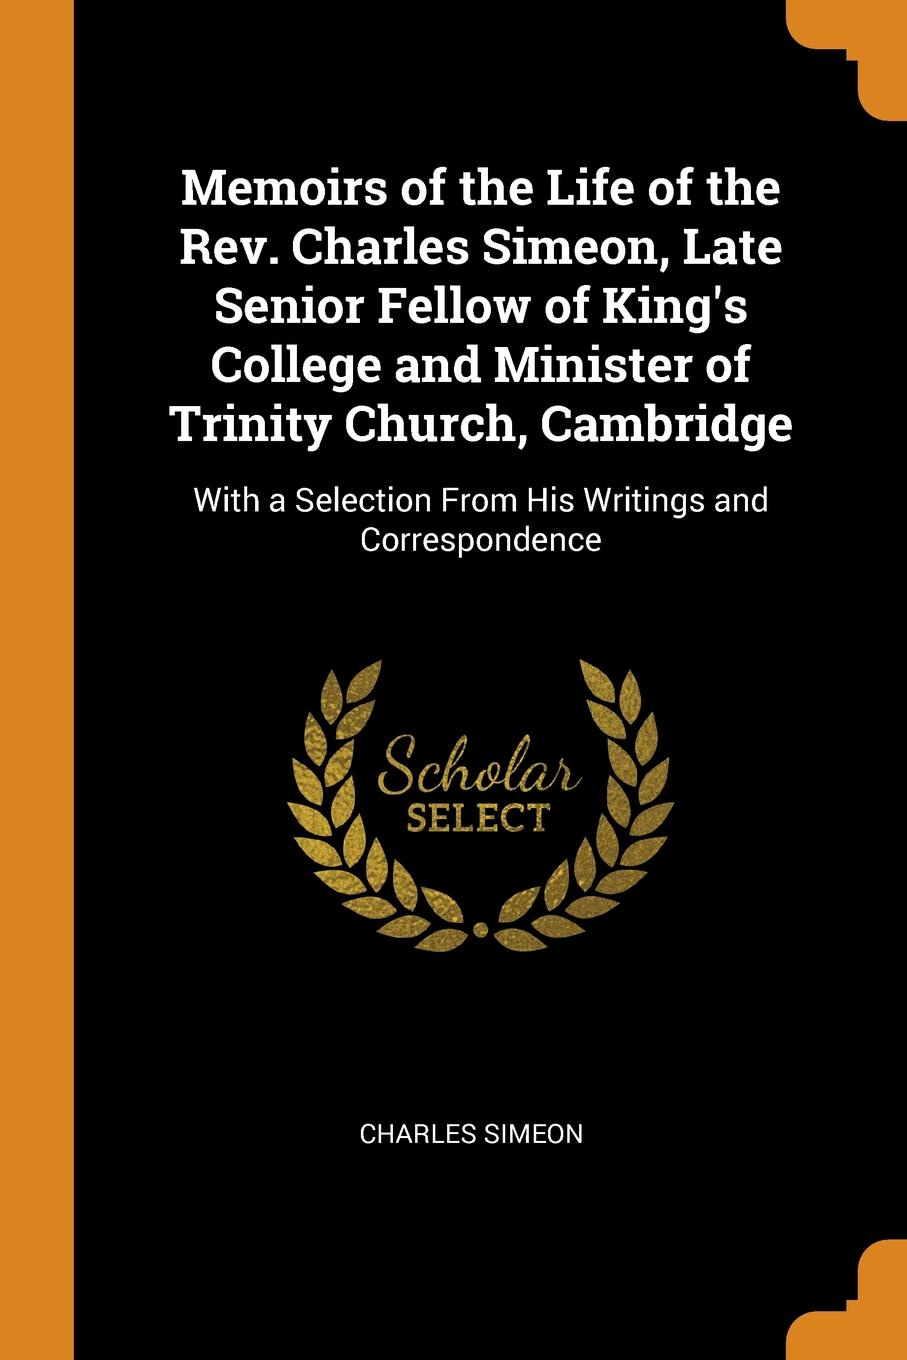 Memoirs-of-the-Life-of-the-Rev-Charles-Simeon-Late-Senior-Fellow-of-Kings-College-and-Minister-of-Trinity-Church-Cambridge-With-a-Selection-From-His-W